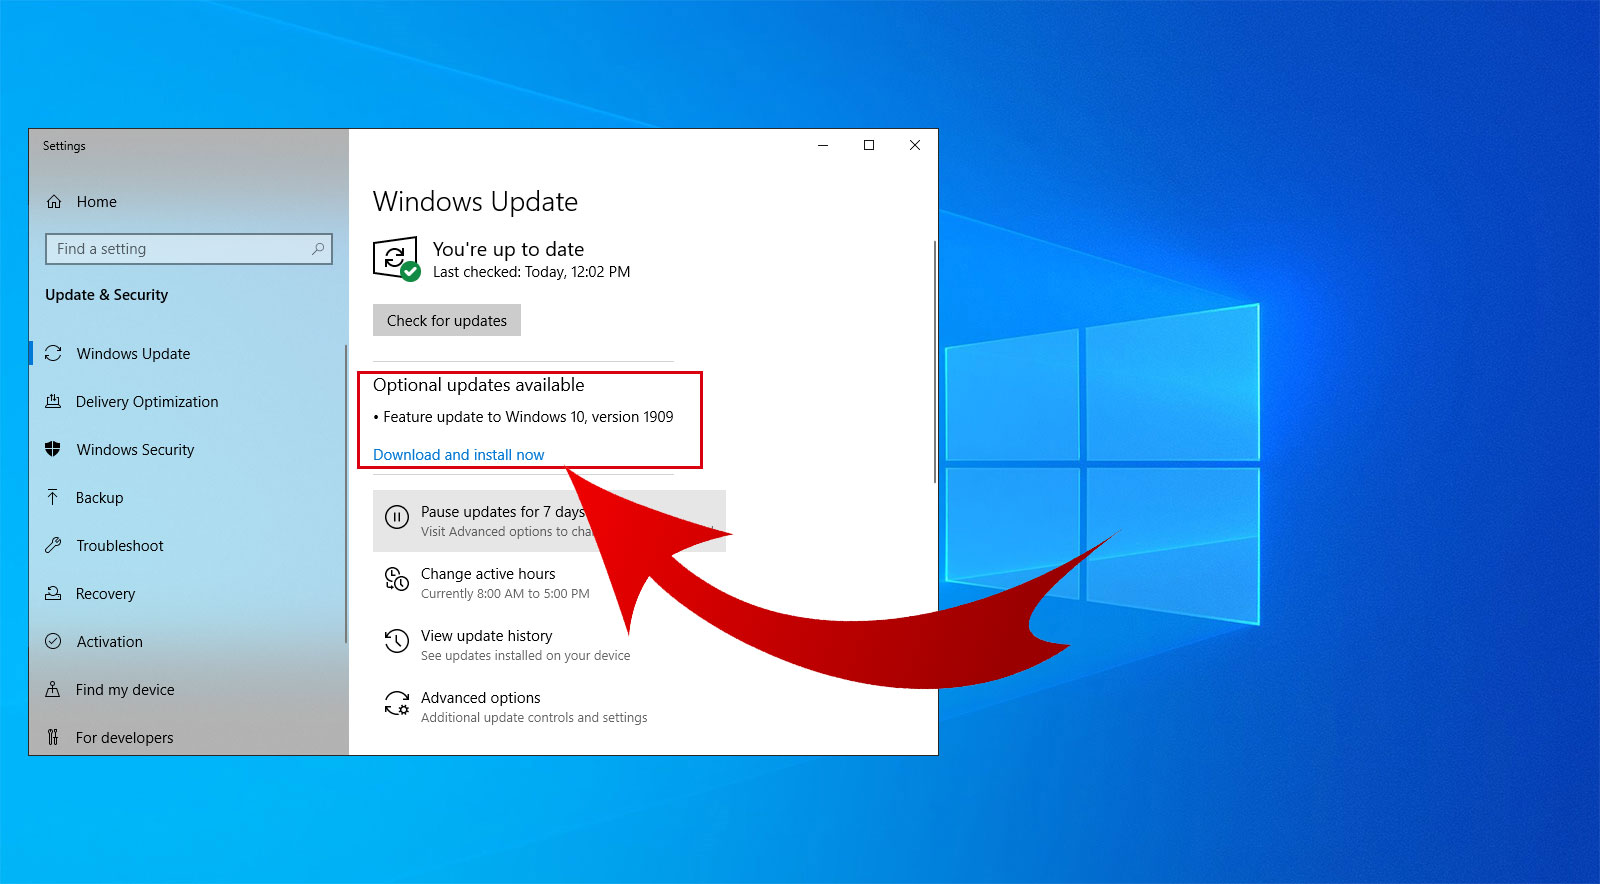 Win10 new patch makes a large wave of printers hang up Microsoft gives a solution